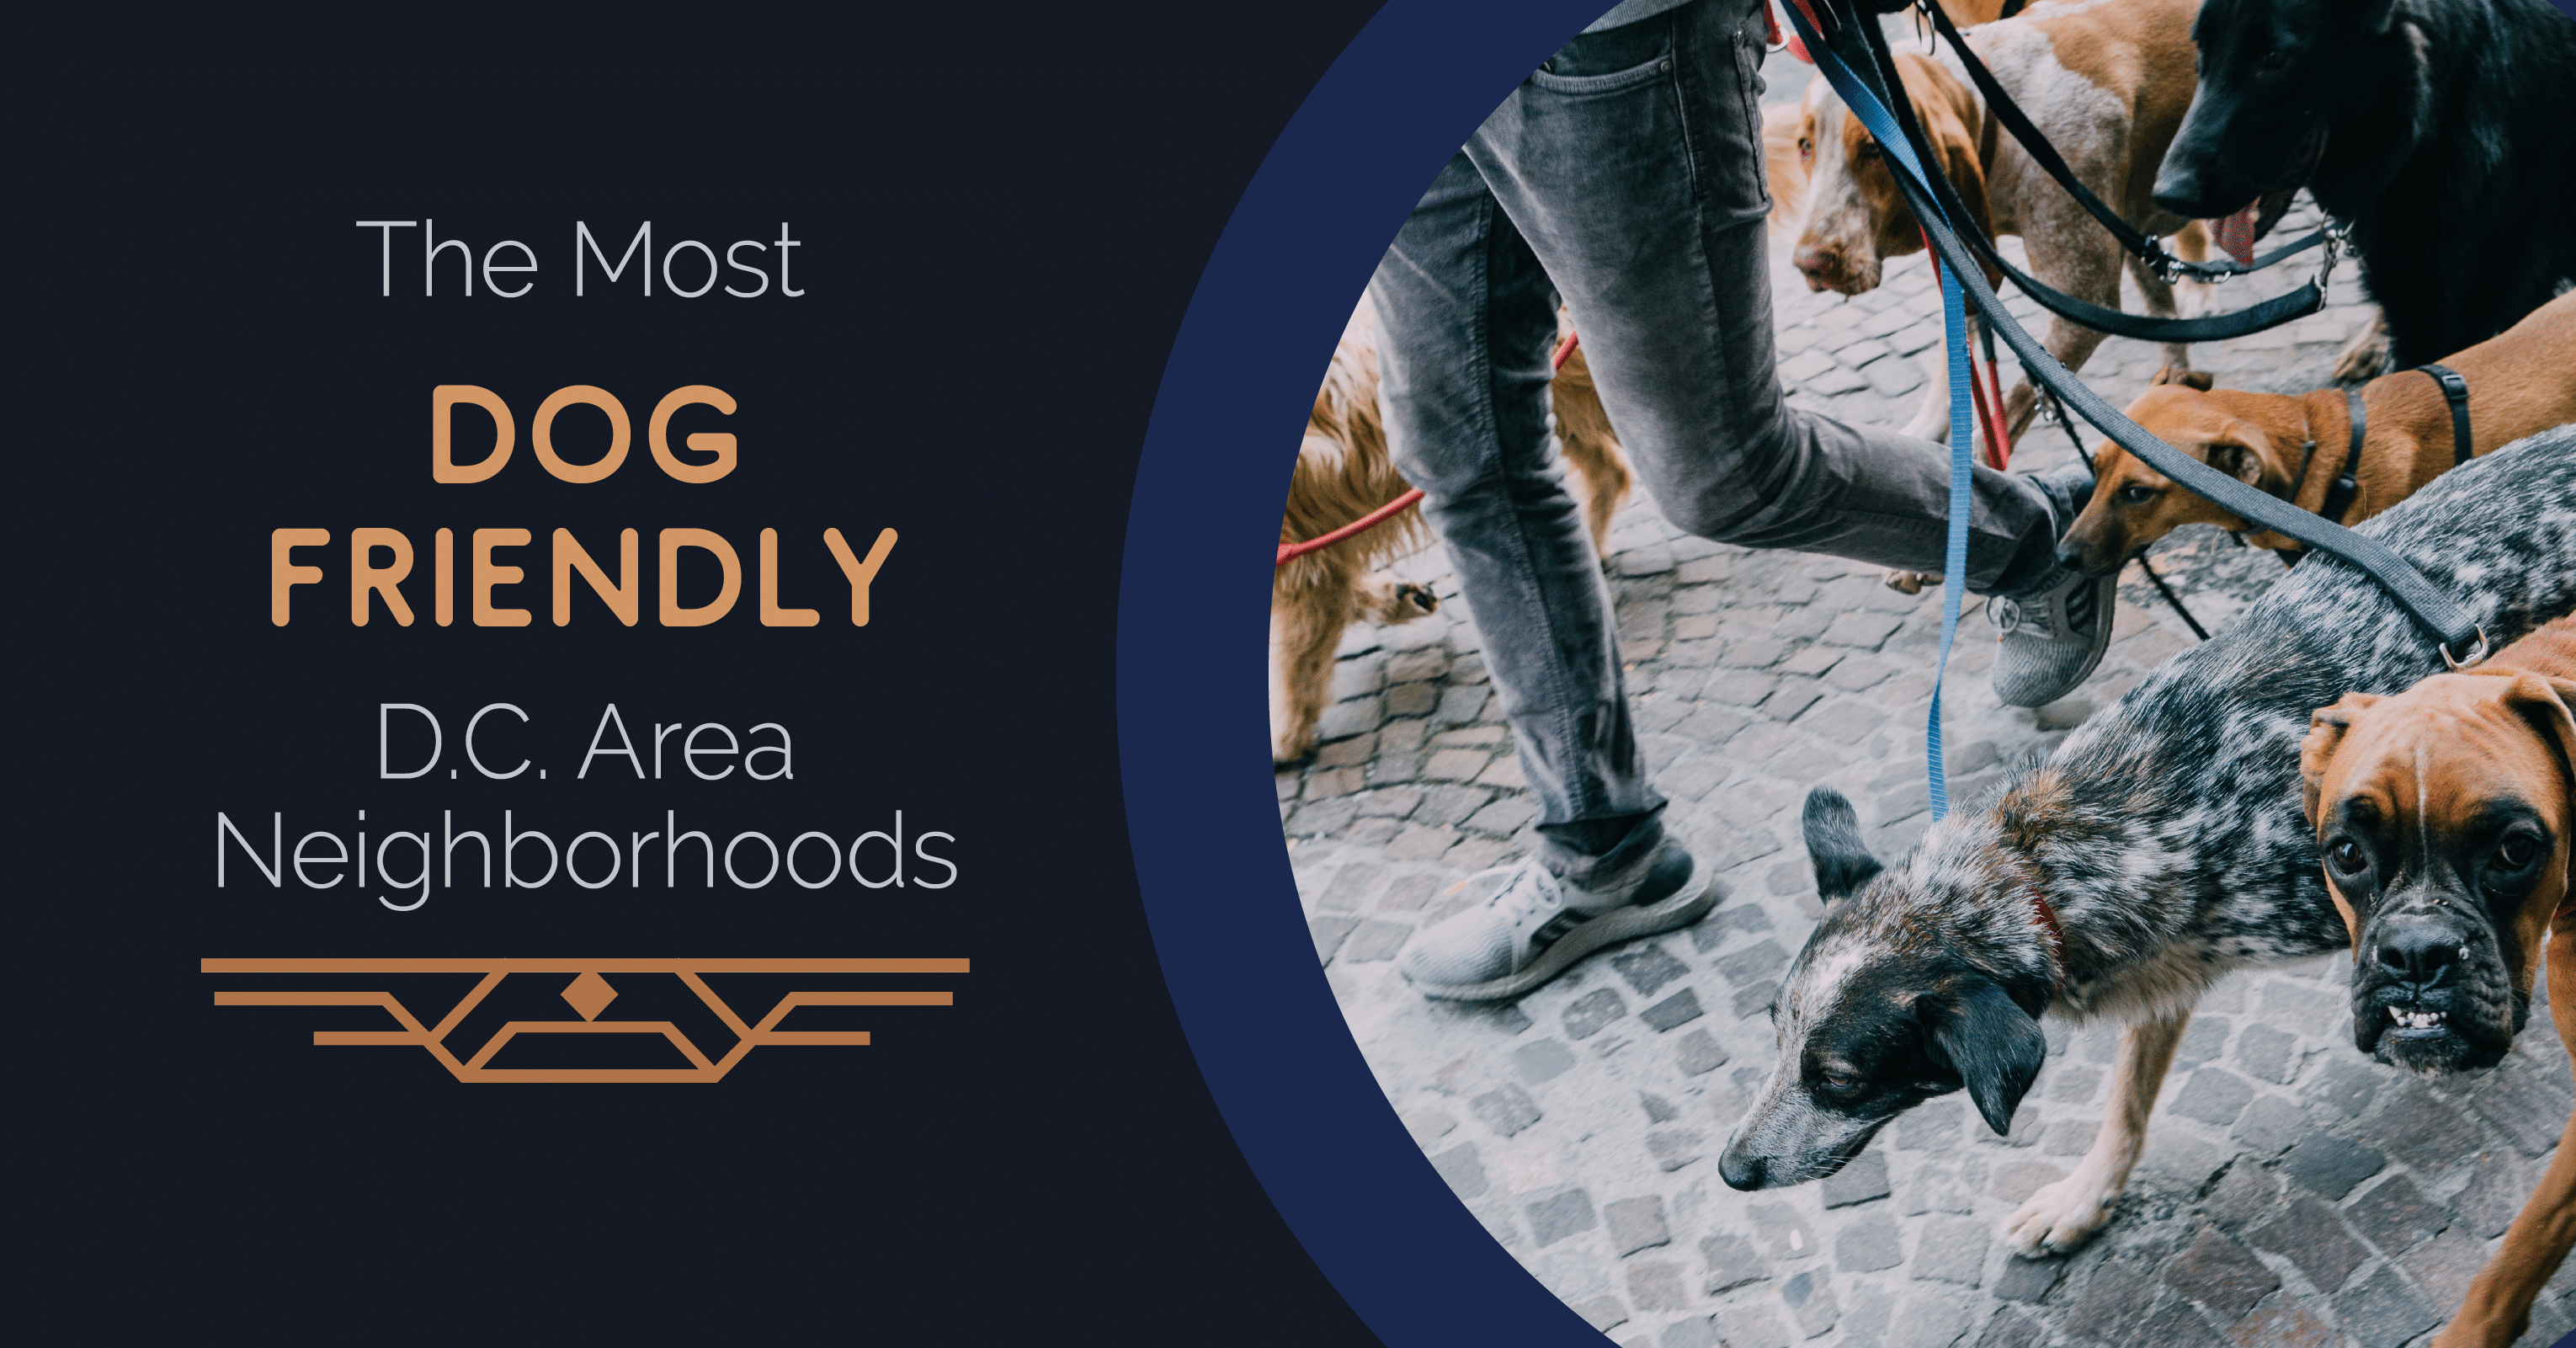 The Most Dog-Friendly D.C. Area Neighborhoods